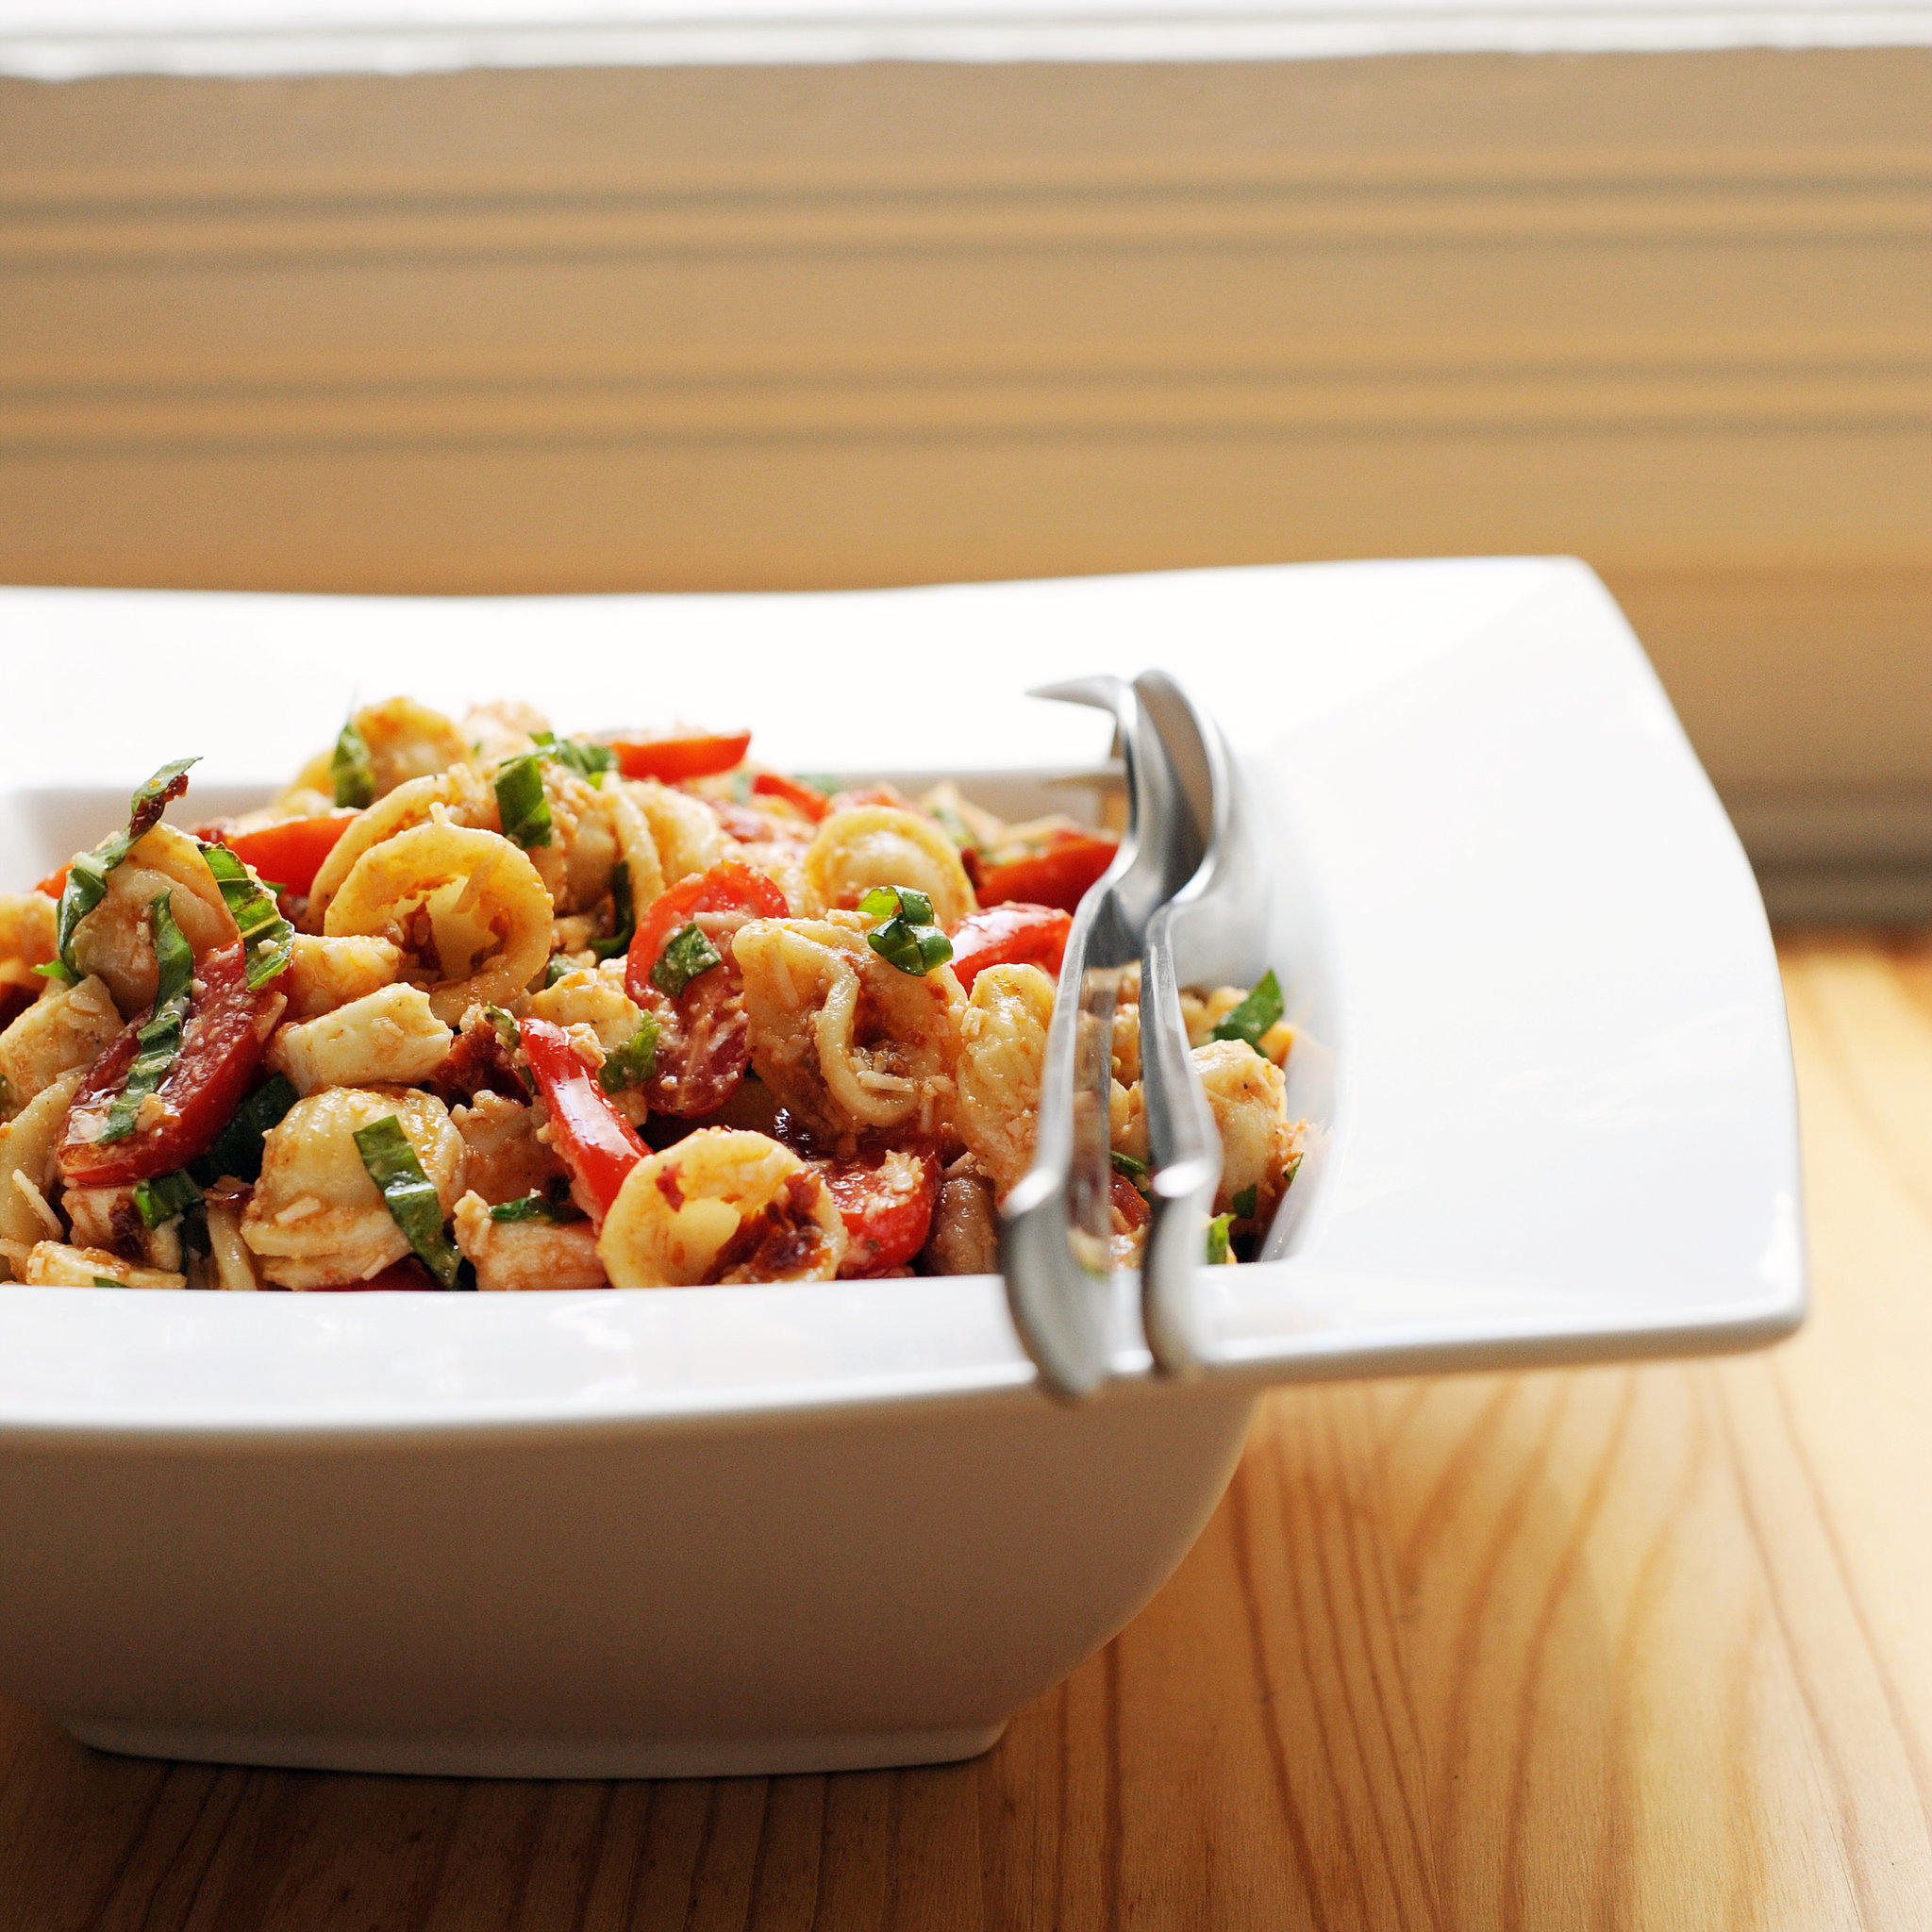 2. Sun-Dried Tomato Pasta Salad